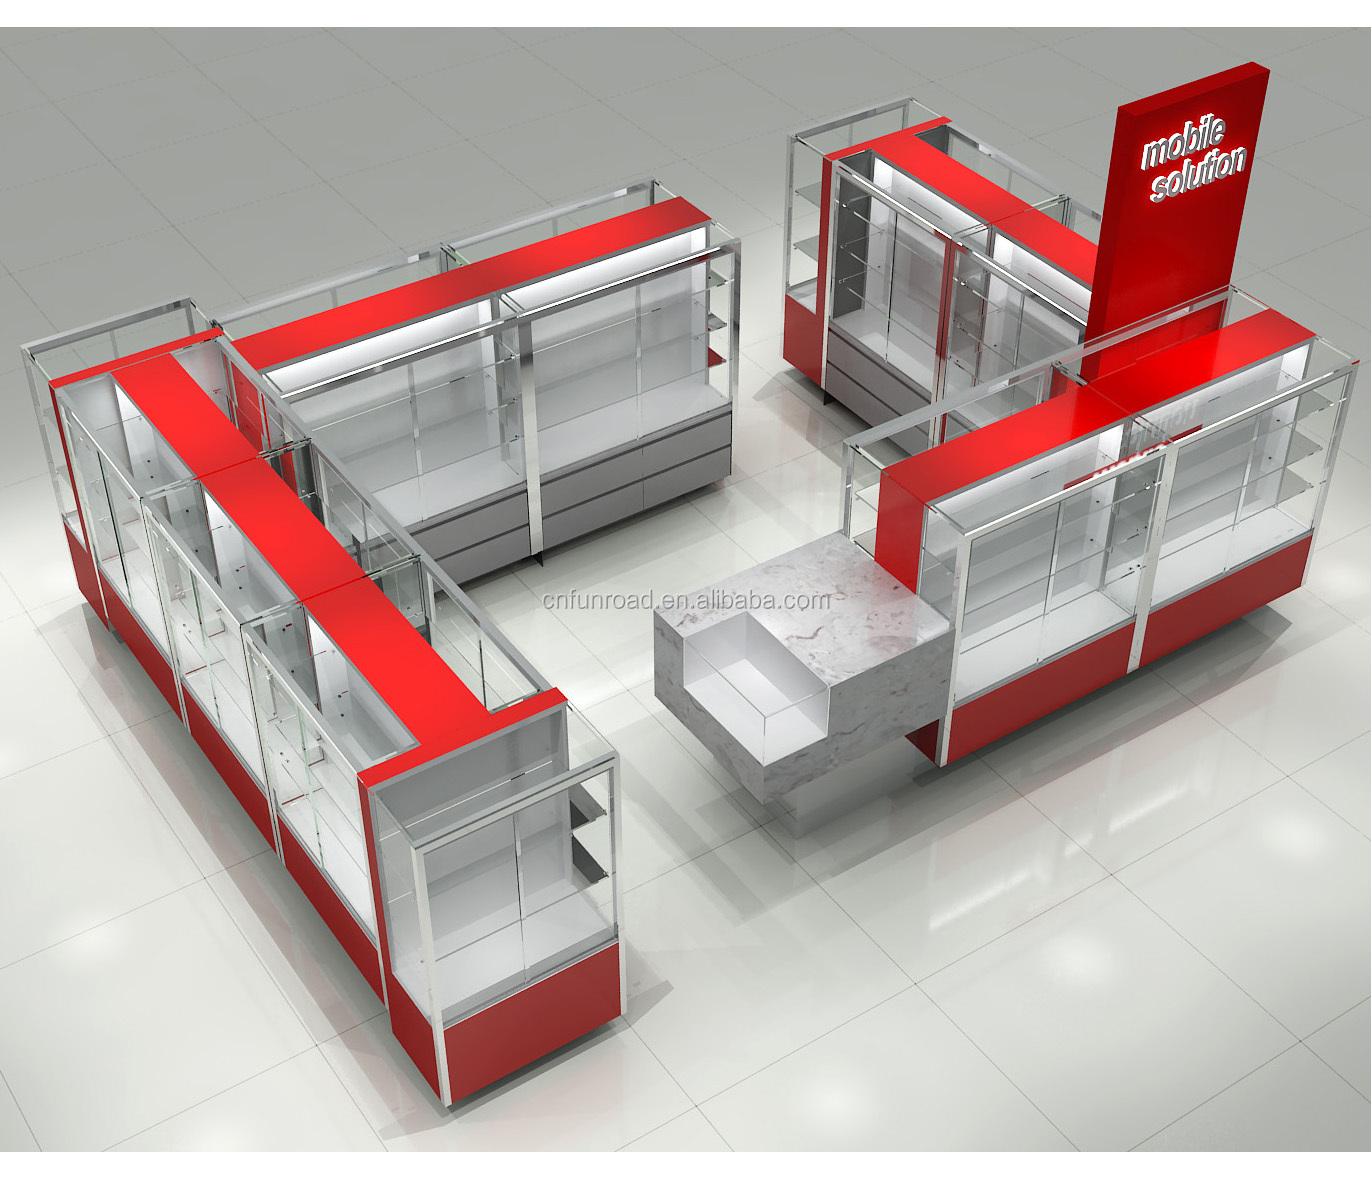 Cell phone accessory kiosk design 3x4m shopping mall phone kiosk design